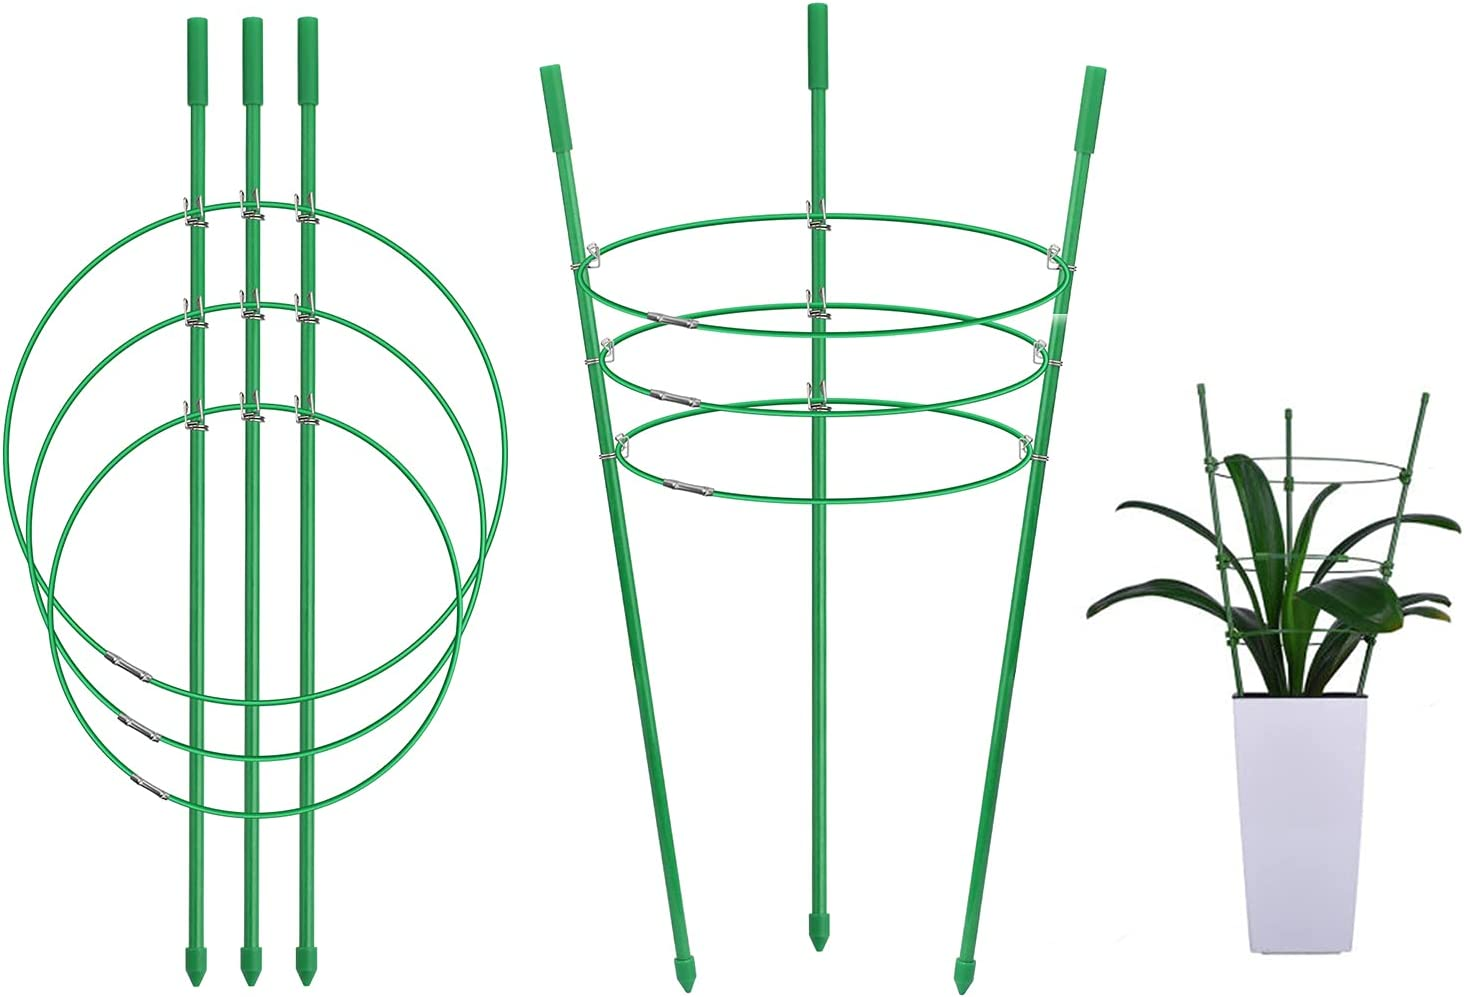 Foldable Small Flower Plant Support Cage 45CM/17INCH Plant Cage Trellises Stake, Tomato Cage Plant Growth Cage Support Frame Climbing Plants, Adjustable Rings for Garden Lawn Care 2 Pack(17'')